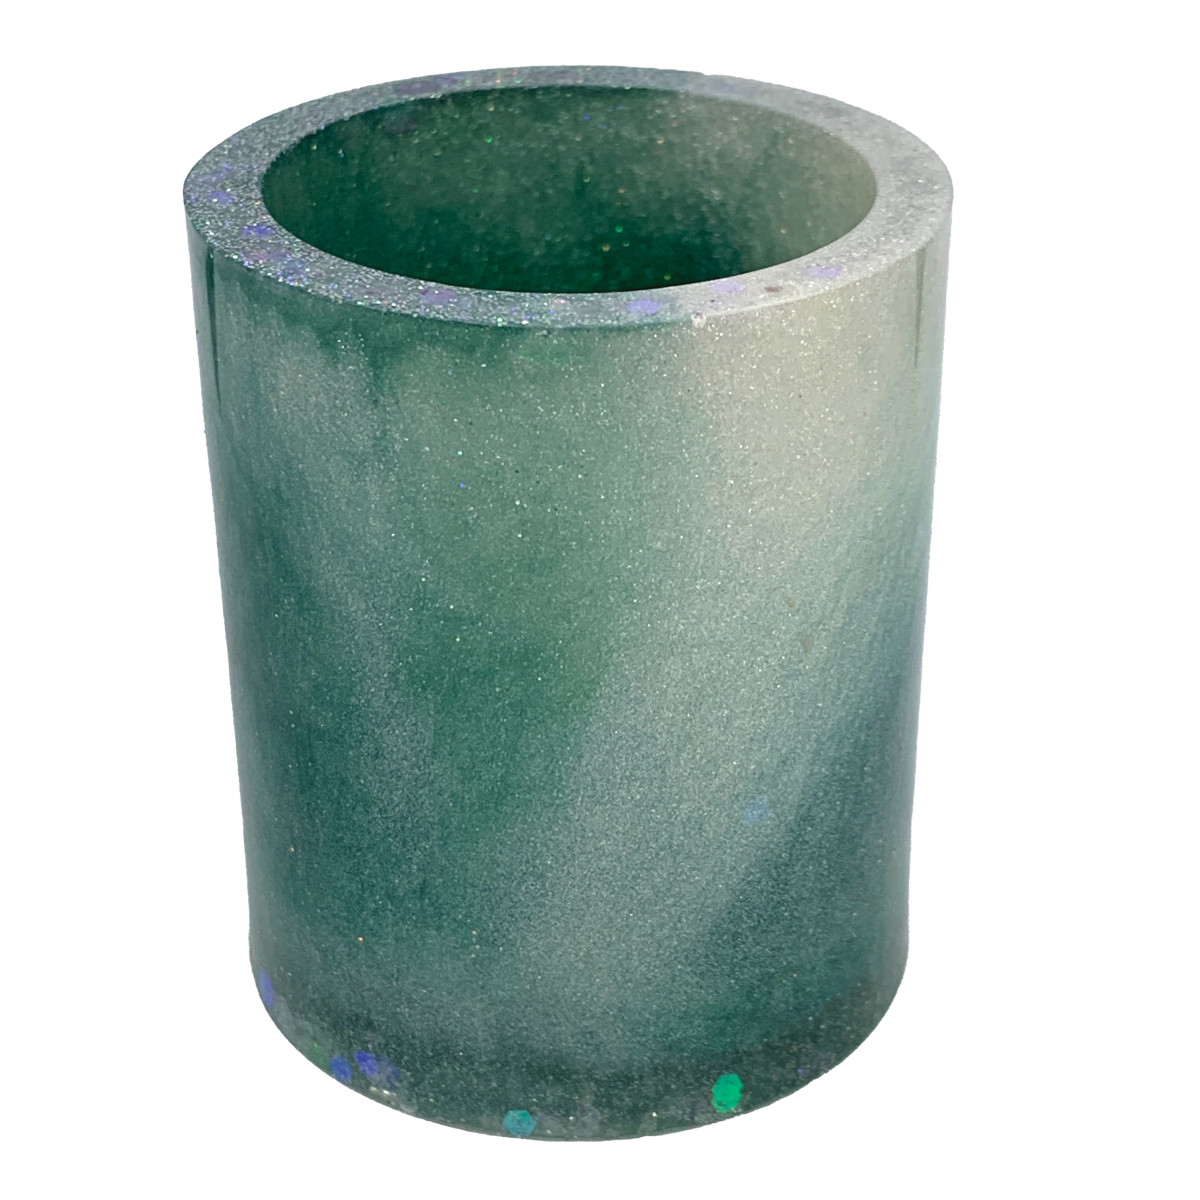 Resin Cylinder - Teal It Sparkles #7 by Susi Schuele